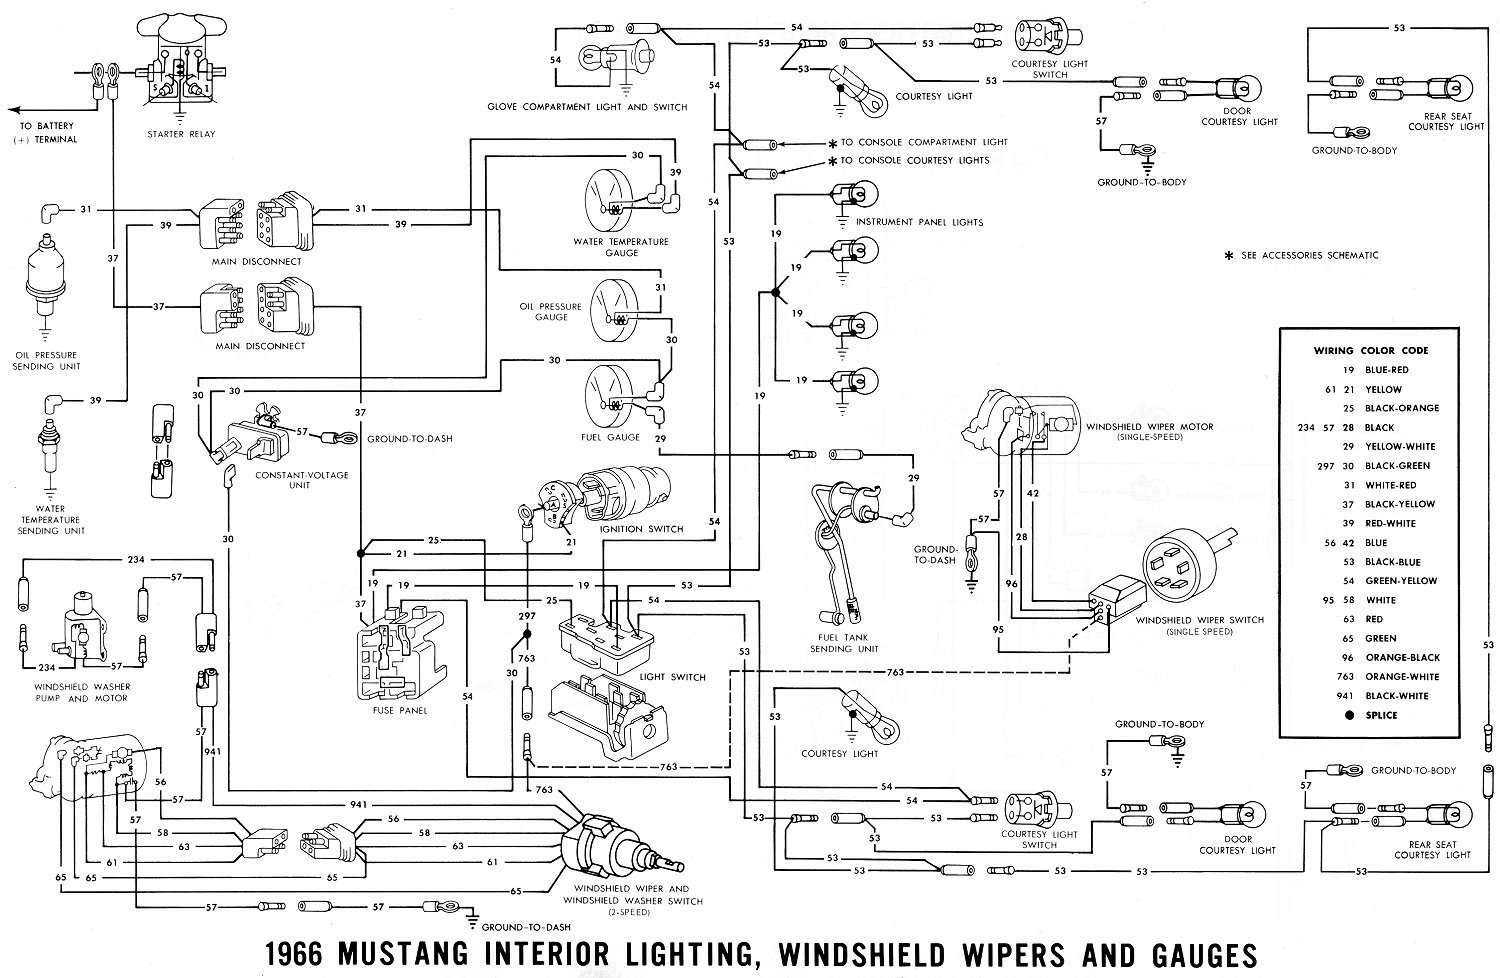 1976 Ford Mustang Radio Wiring Great Design Of Diagram Factory 1966 Explorer Stereo 2000